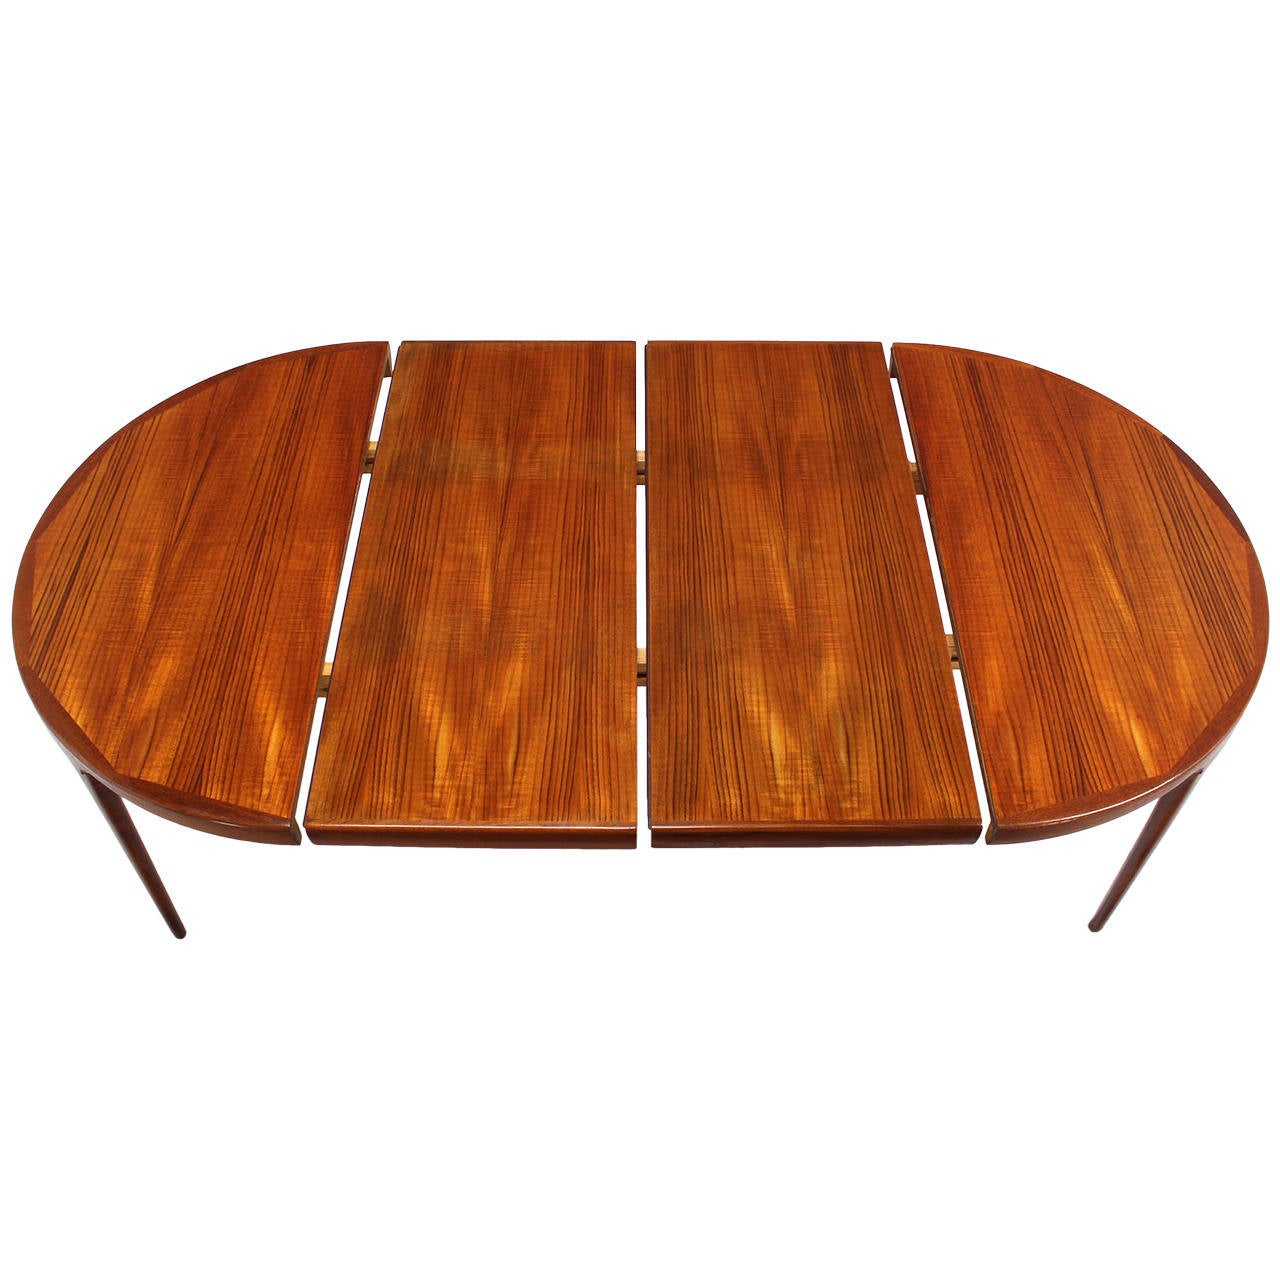 Danish mid century modern round teak dining table with two for Large round dining room tables with leaves